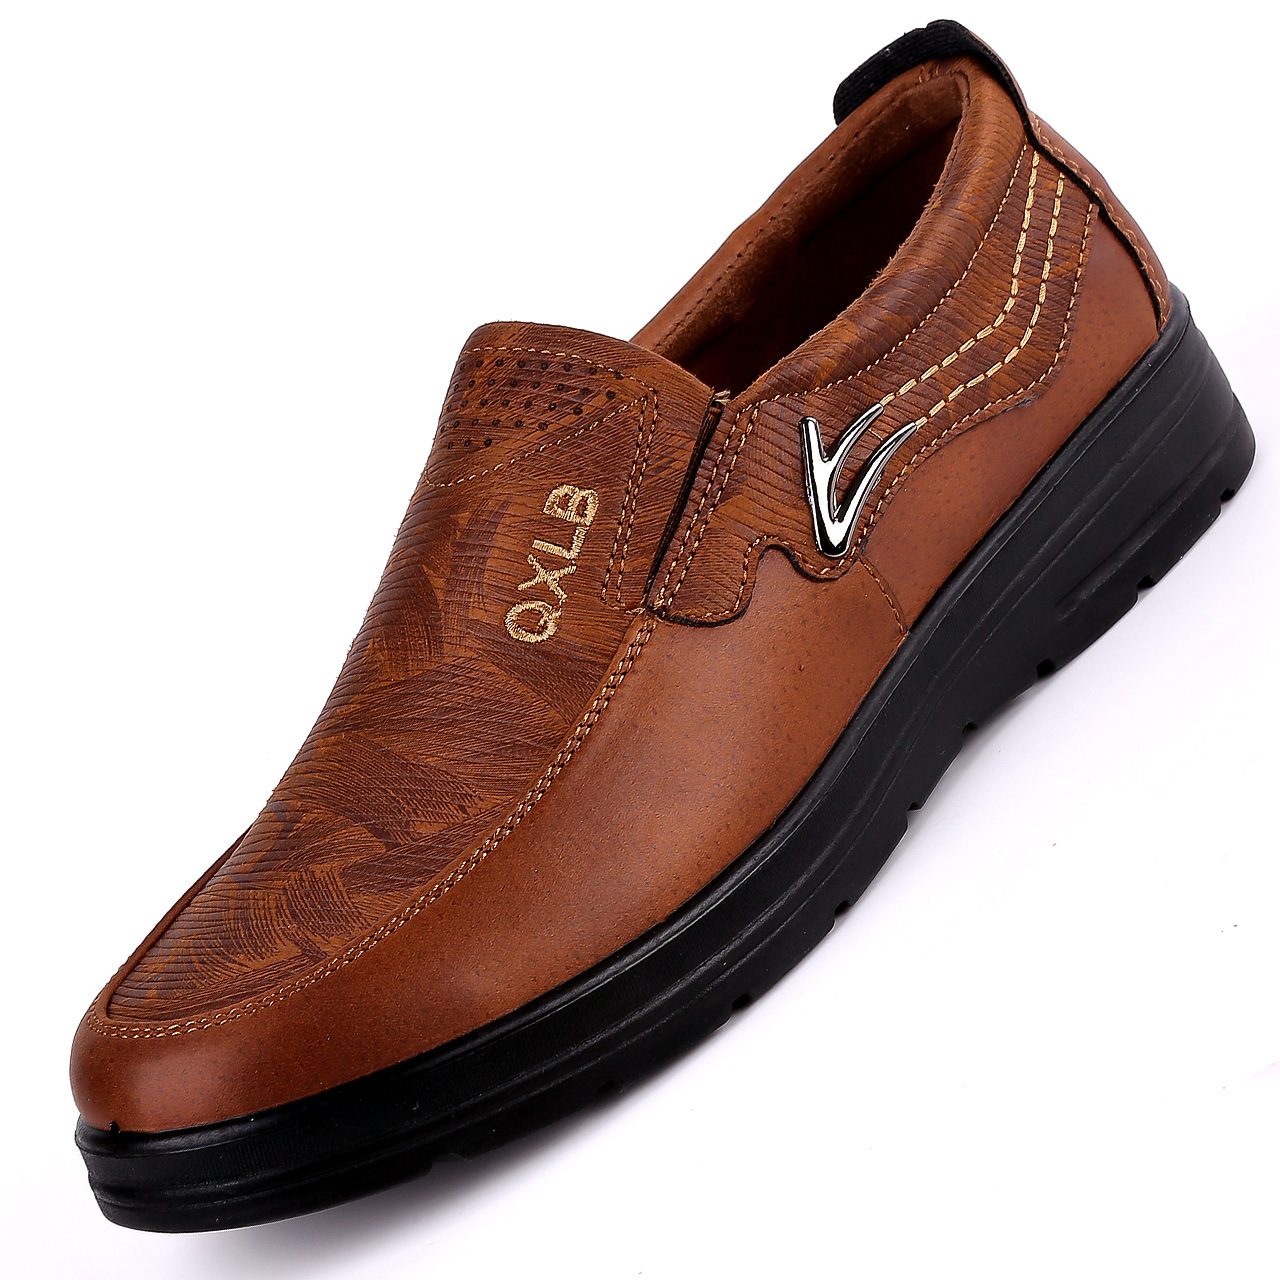 New Trademark Size 38 47 Upscale Men Casual Shoes Fashion Leather Shoes for Men Spring Autumn Men'S Flat Shoes Driving Sneakers